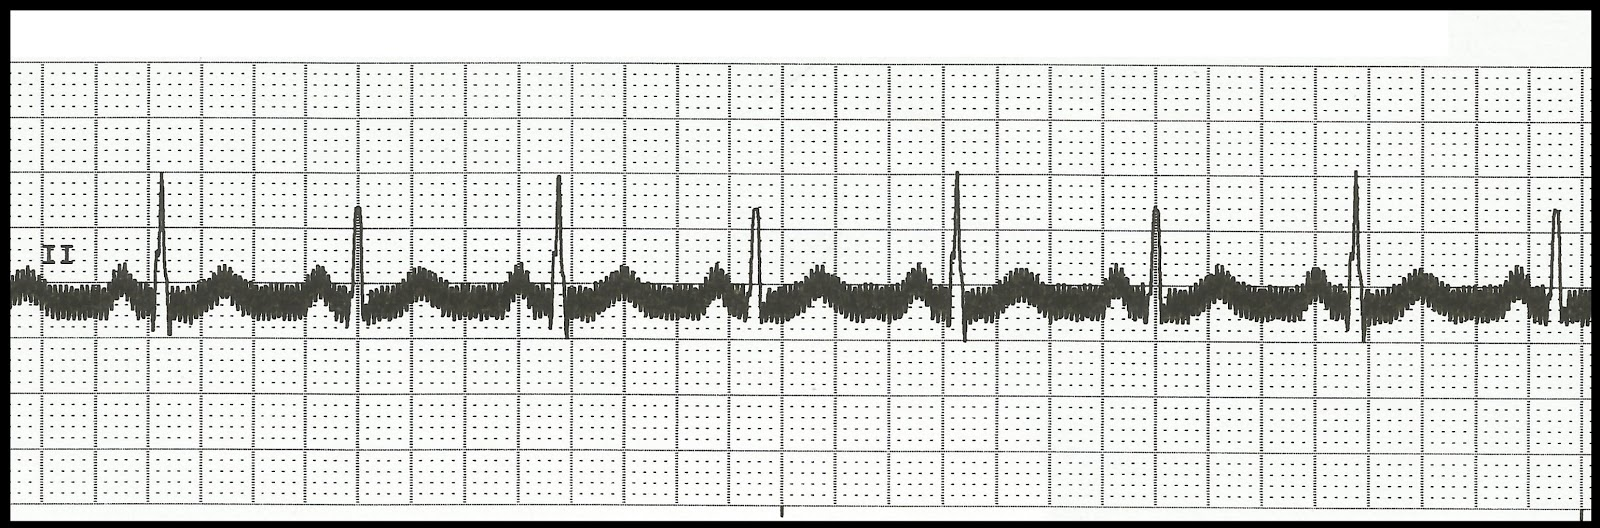 Float Nurse Basic Ekg Rhythm Test 04